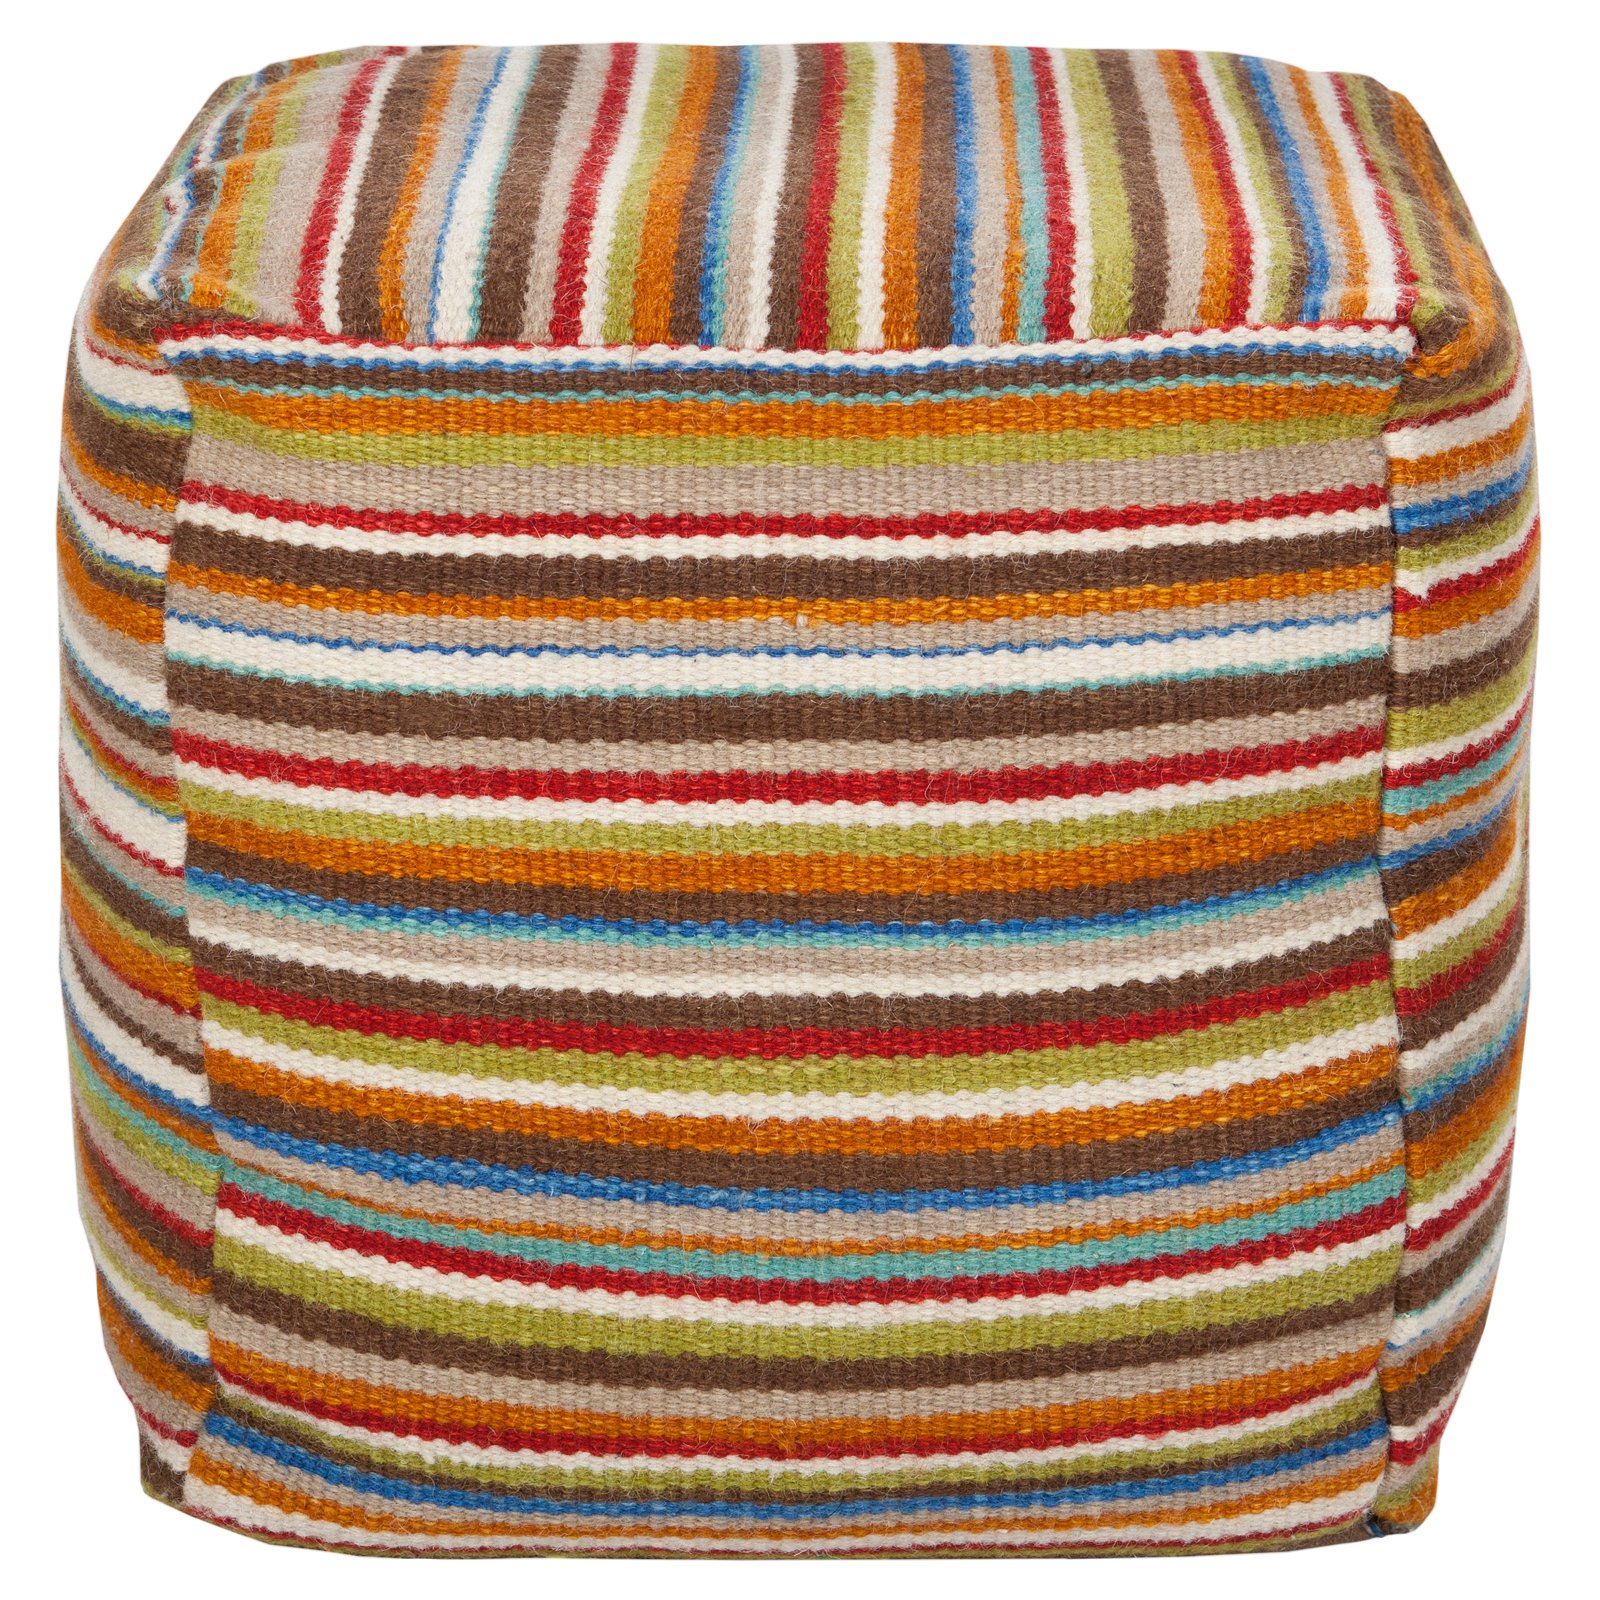 Surya 18 in. Cube Wool and Cotton Pouf Venetian Red by Surya